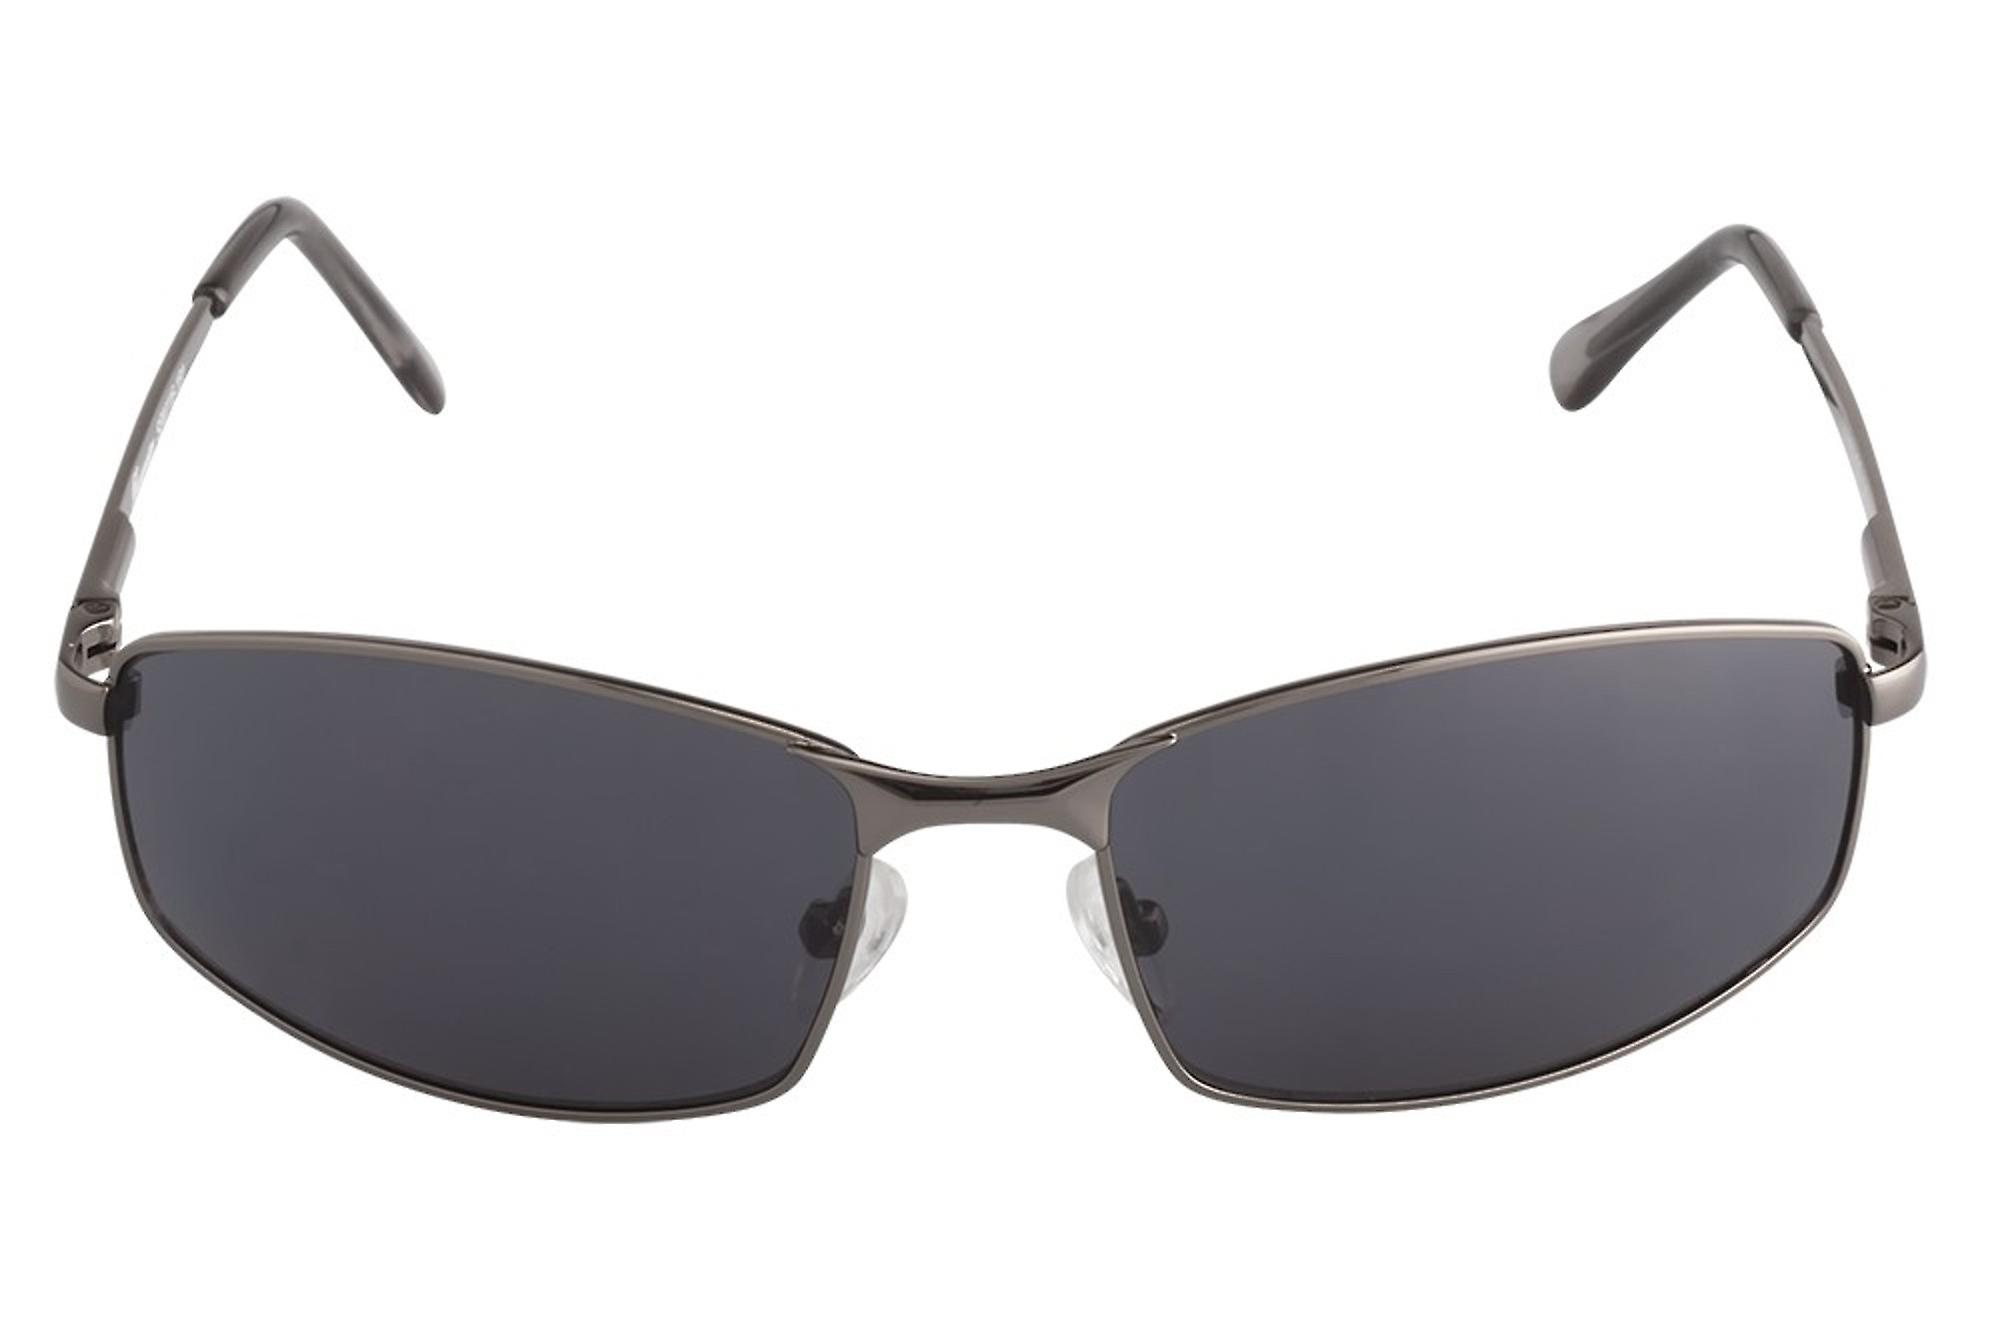 Classic sunglasses for men by Burgmeister with 100% UV protection | sturdy metal frame, high quality sunglasses case, microfiber glasses pouch and 2 year warranty | SBM116-181 Ohio